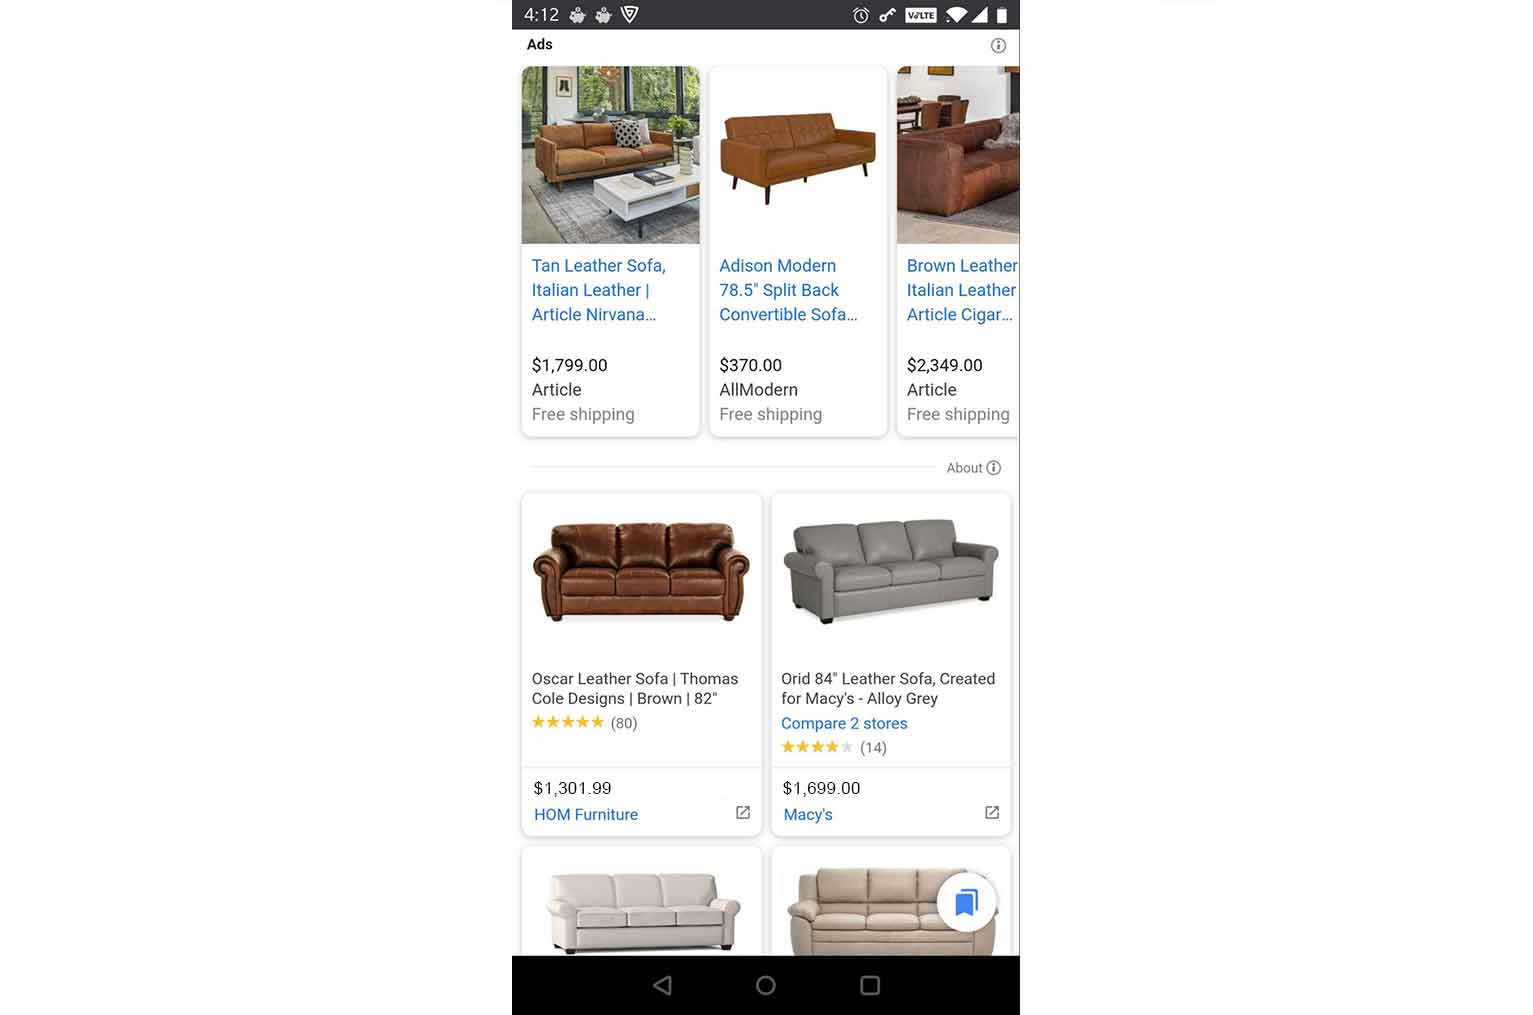 In some product categories such as furniture, you'll see 2 free listings that appear side by side.